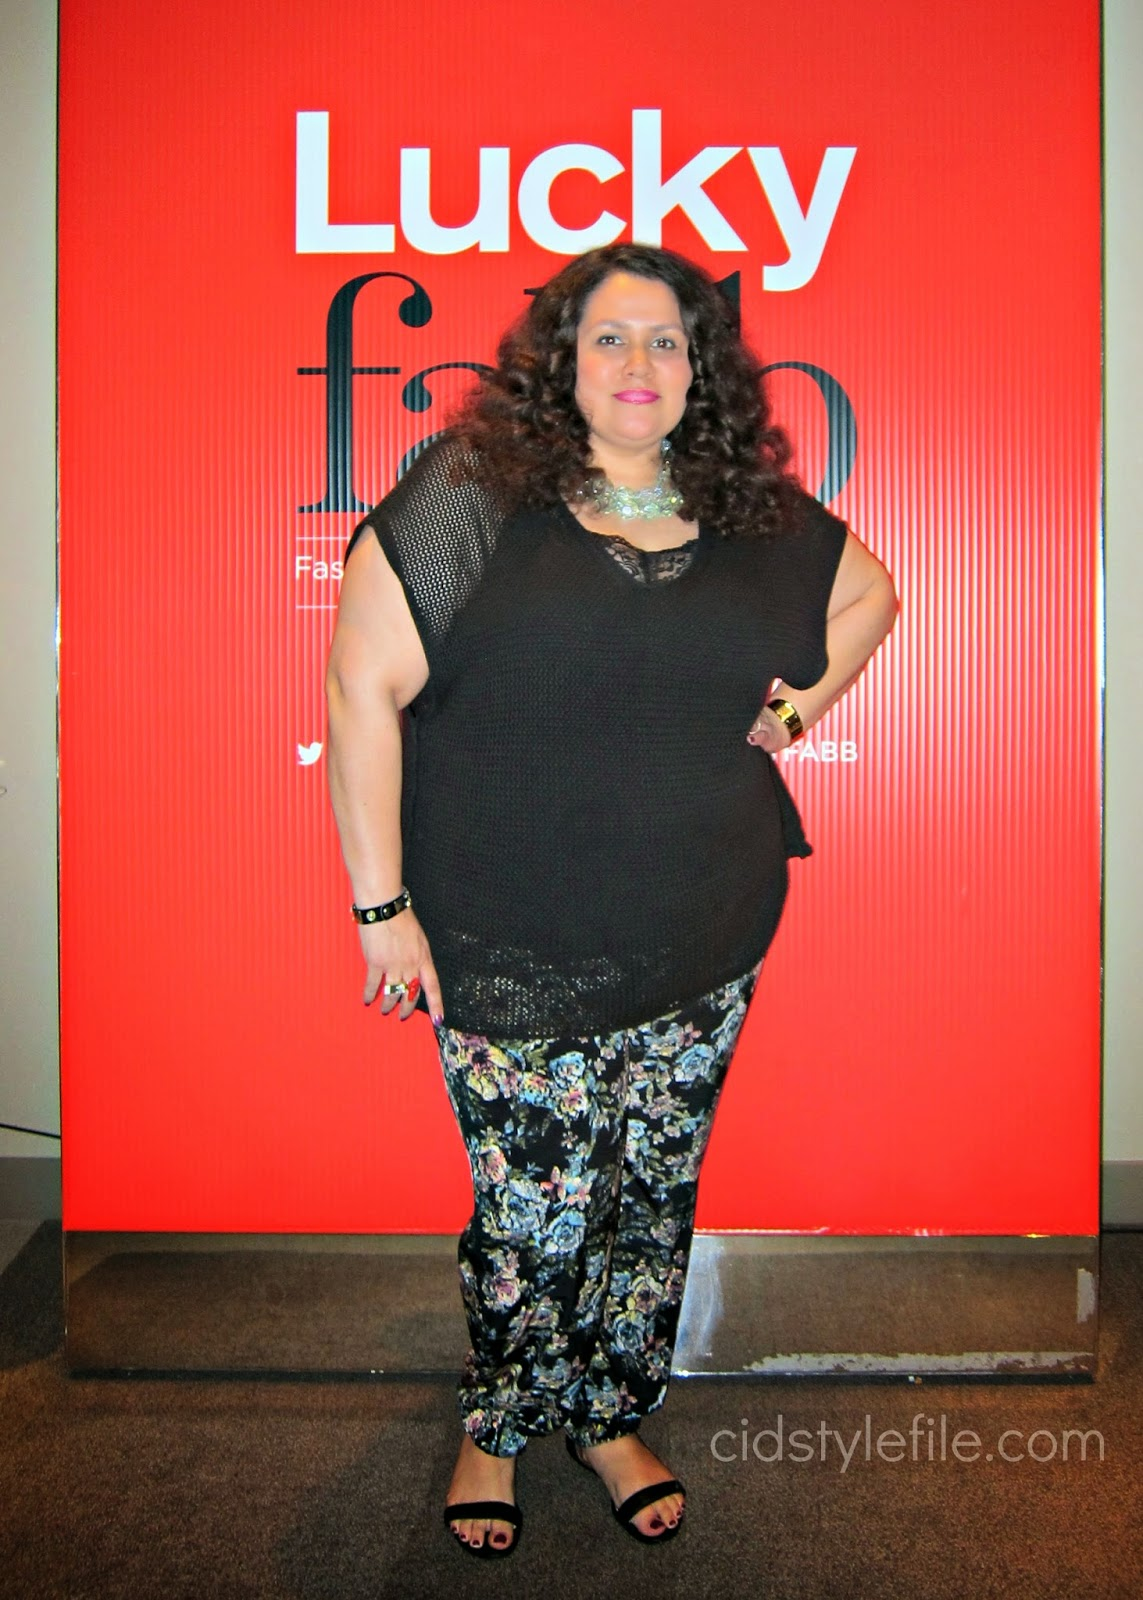 floral pants, forever 21, c wonder, lane bryant, plus size fashion, latina blogger, #LuckyFabb, FabbHair, SLS Hotel